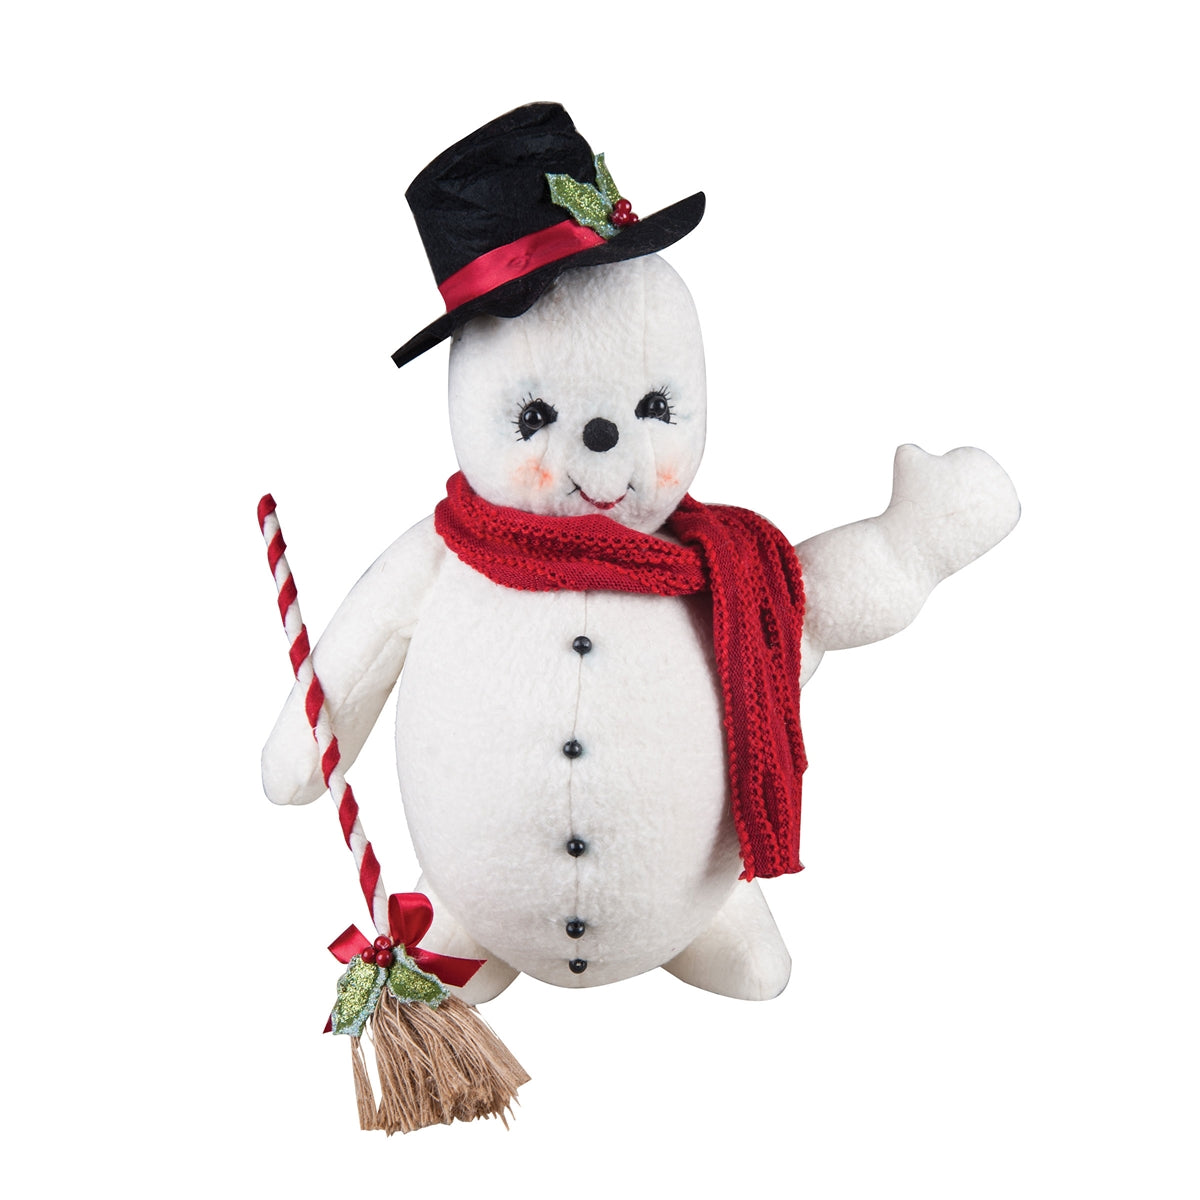 Jackson Snowman with Top Hat & Broom